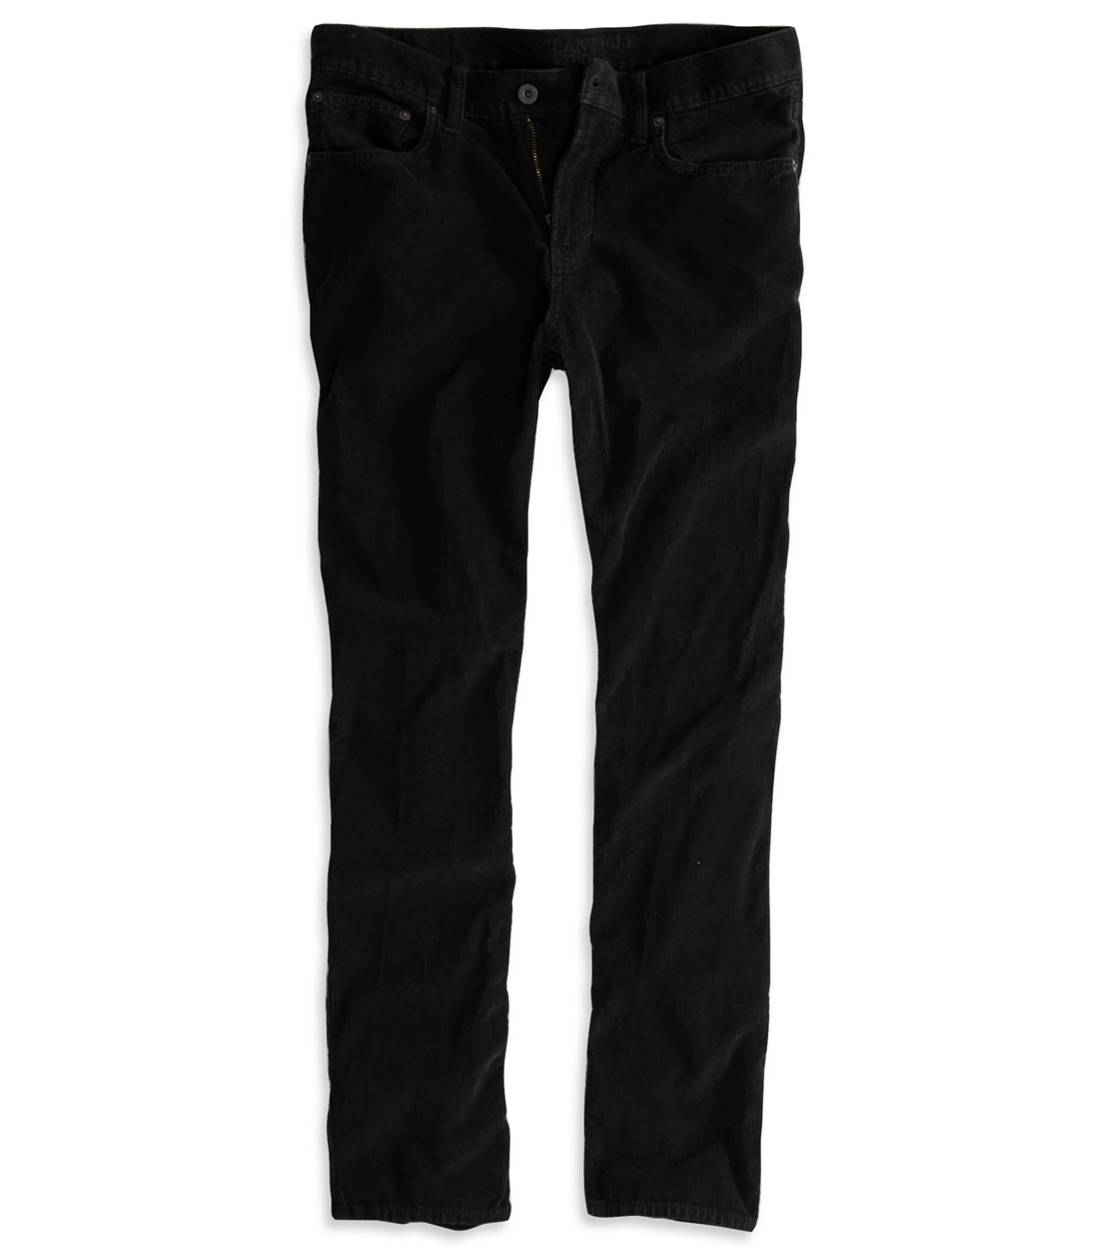 True Black AE Slim Straight Corduroy Pant